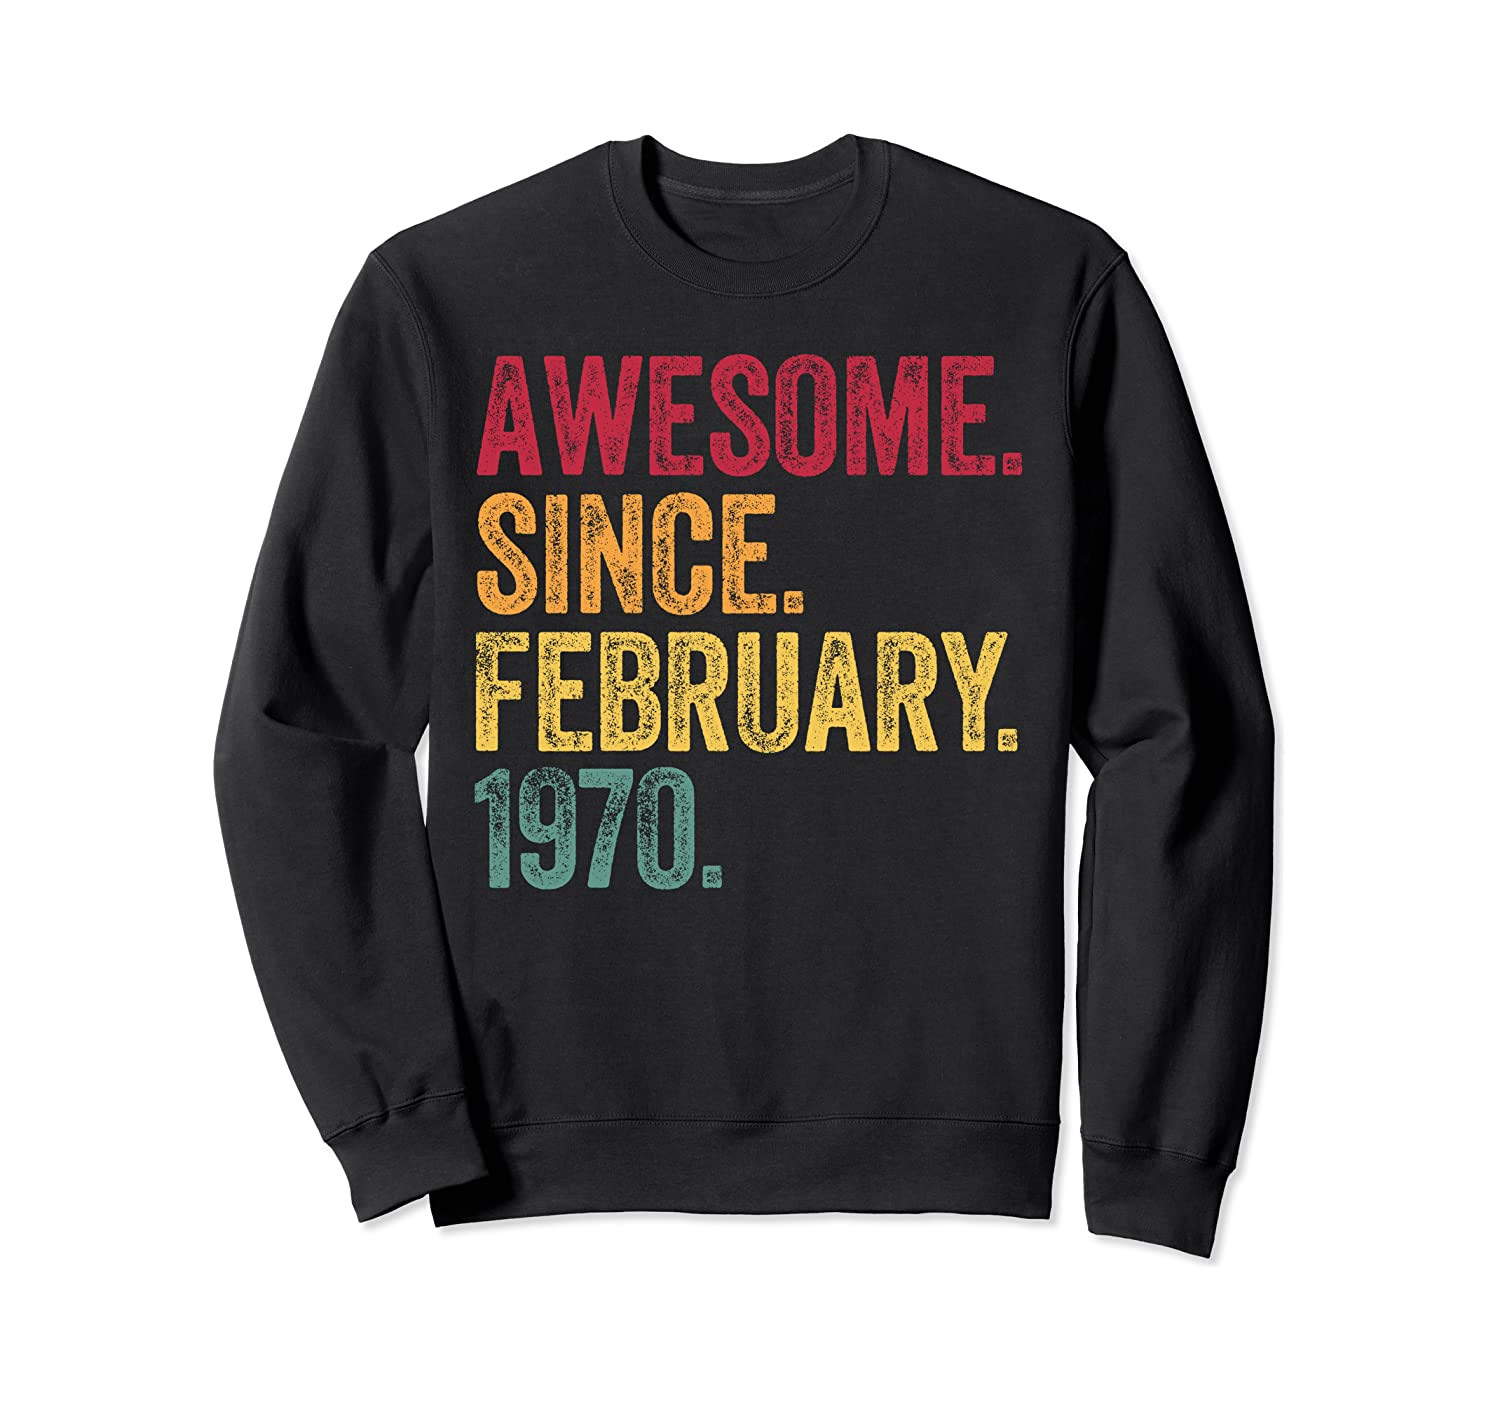 50 Years Old Awesome Since February 1970 50th Birthday Gift Sweatshirt